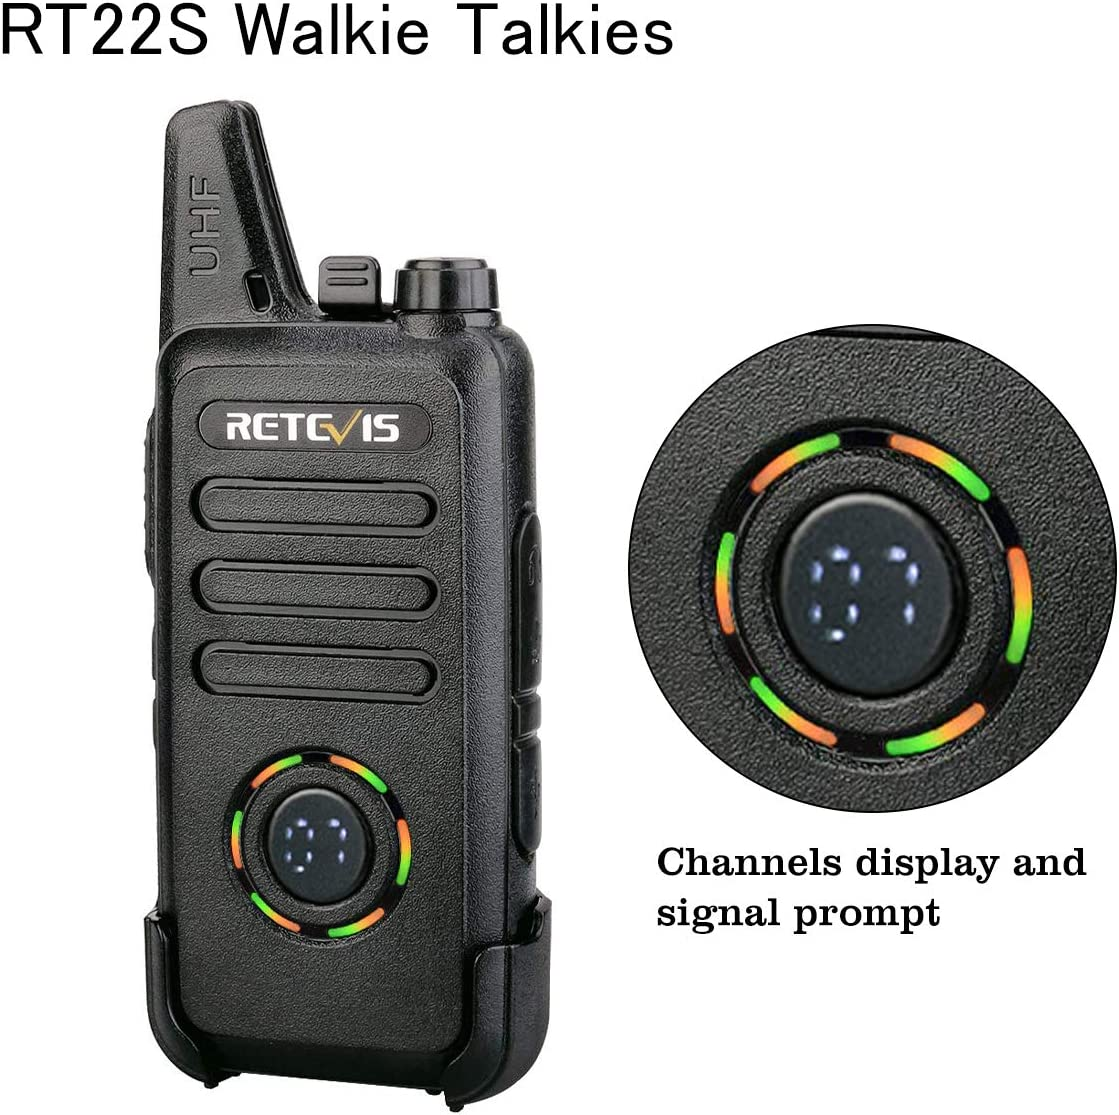 10 Pack Emergency Alarm,for Business Retevis RT22S Two Way Radio,Rechargeable Walkie Talkies Adults,22 Channel Display 2 Way Radios Mini with Earpiece,VOX